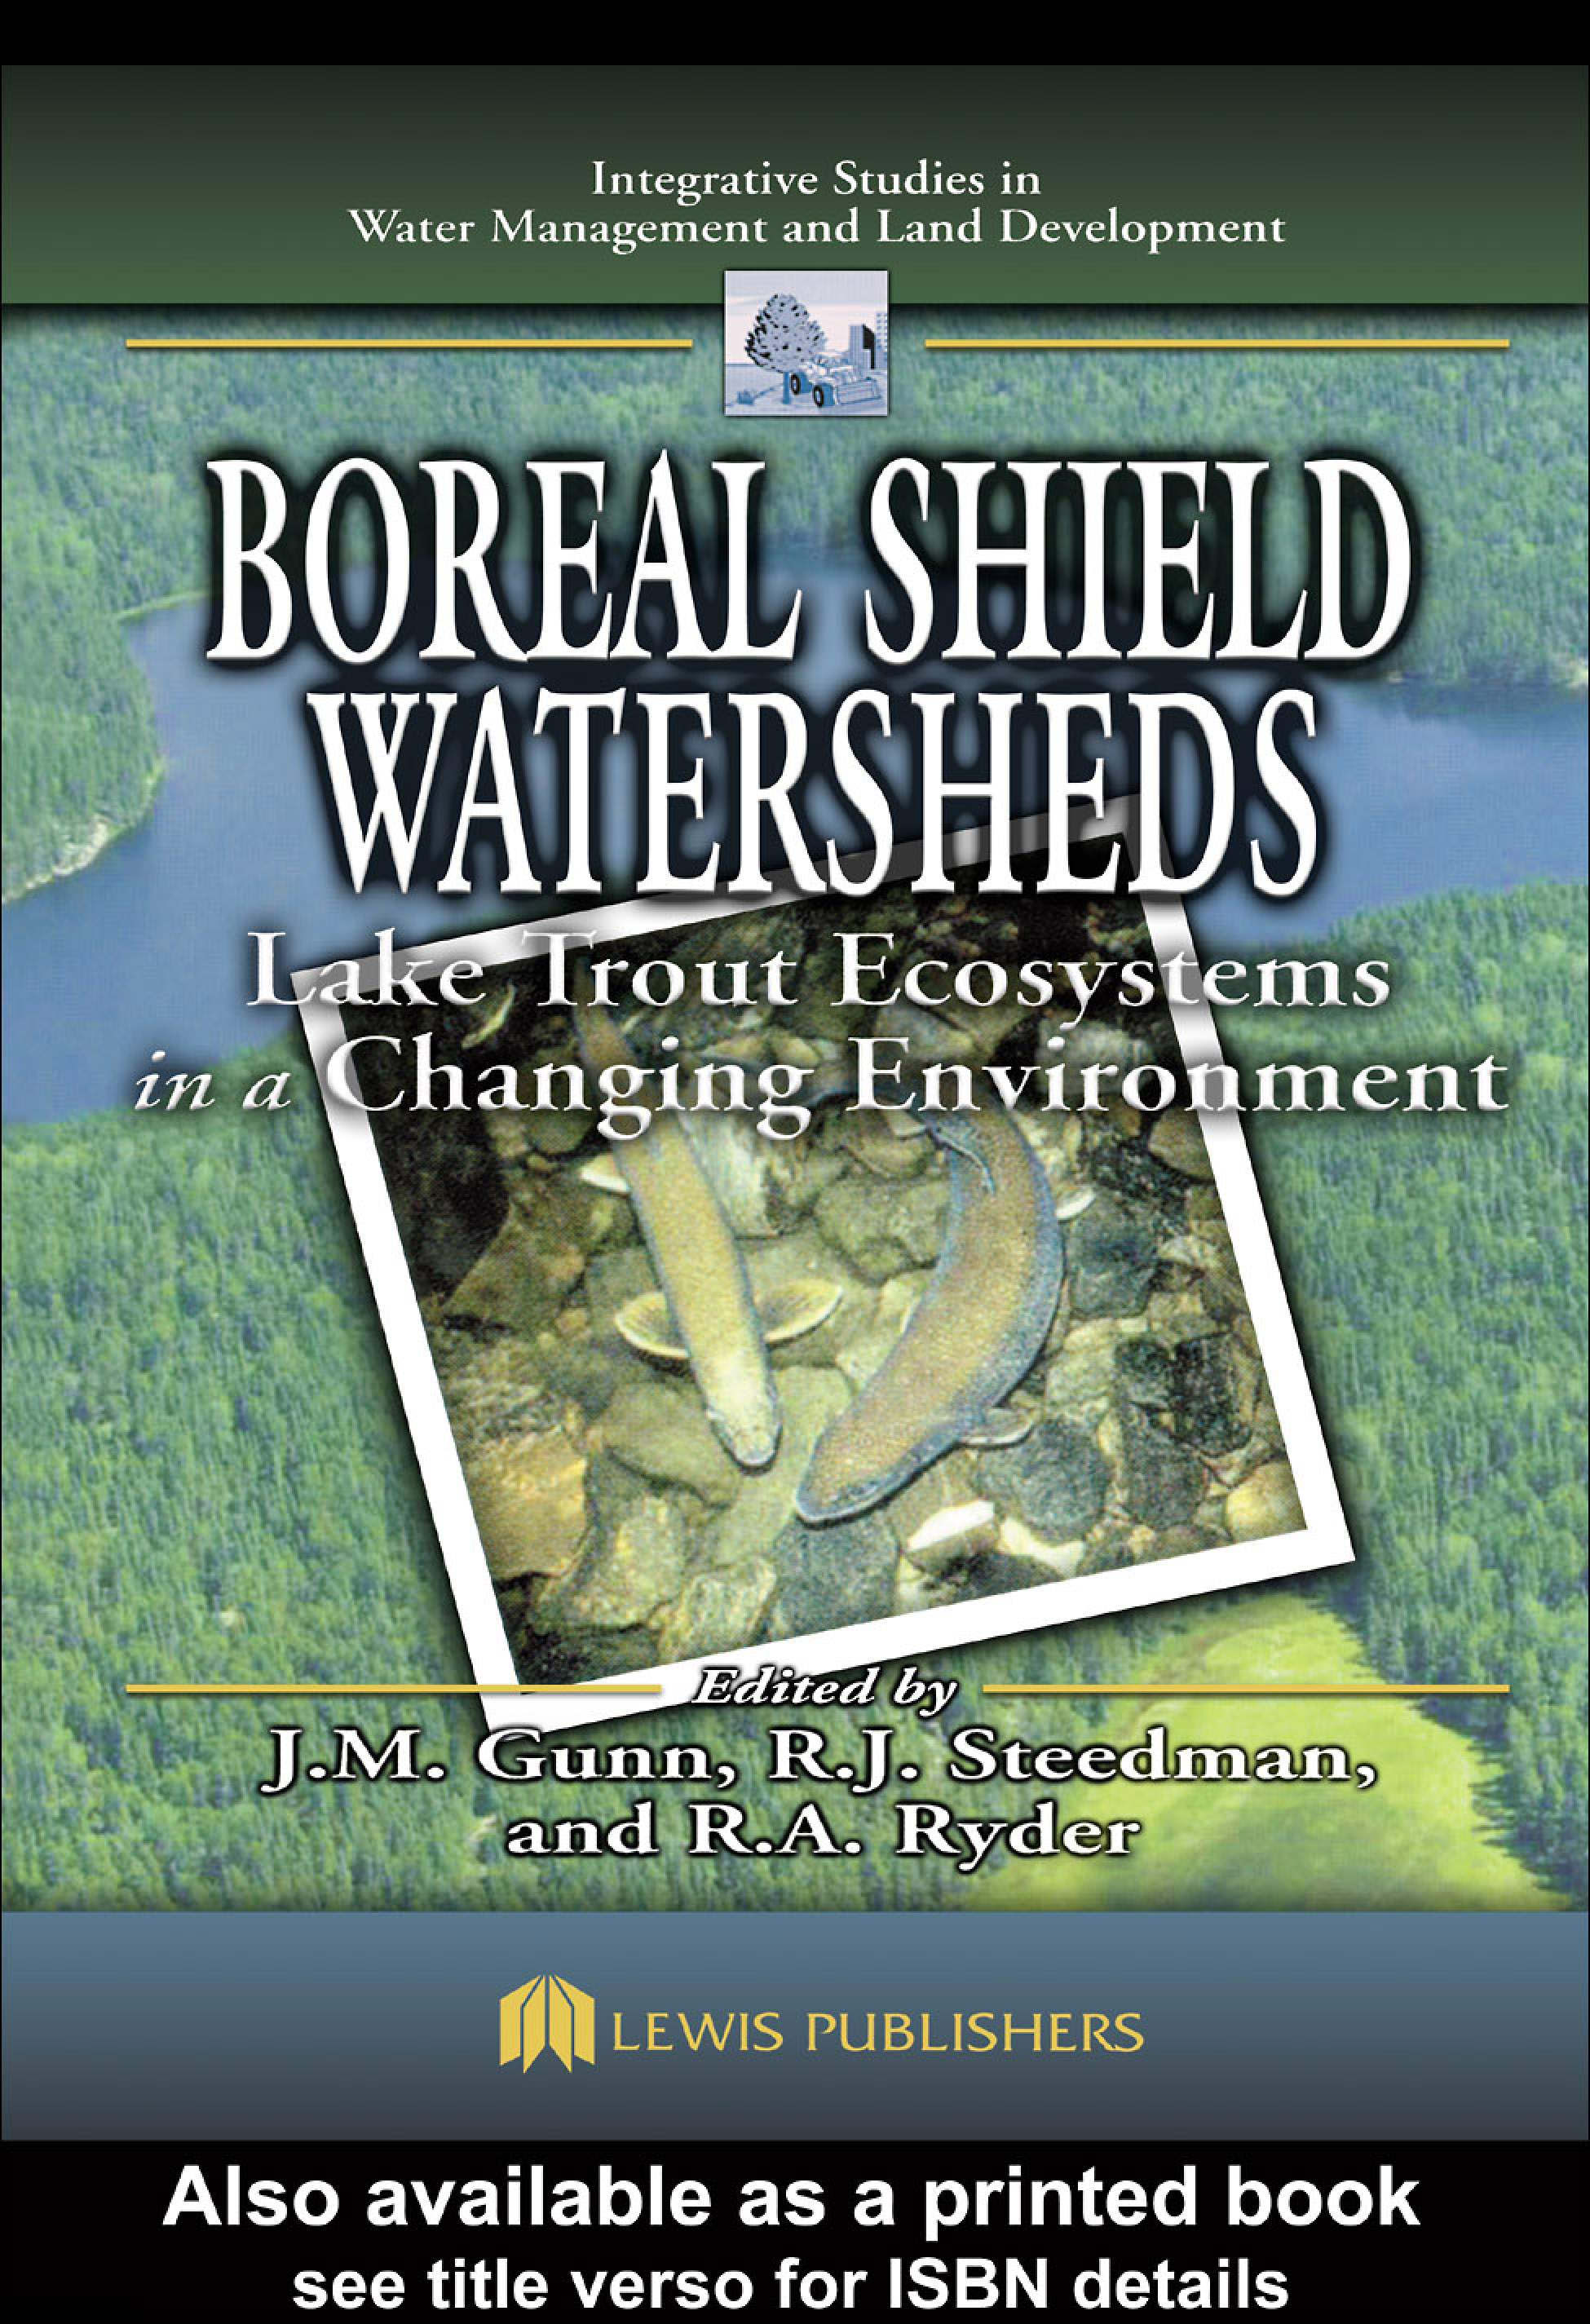 Boreal Shield waters: models and management challenges*